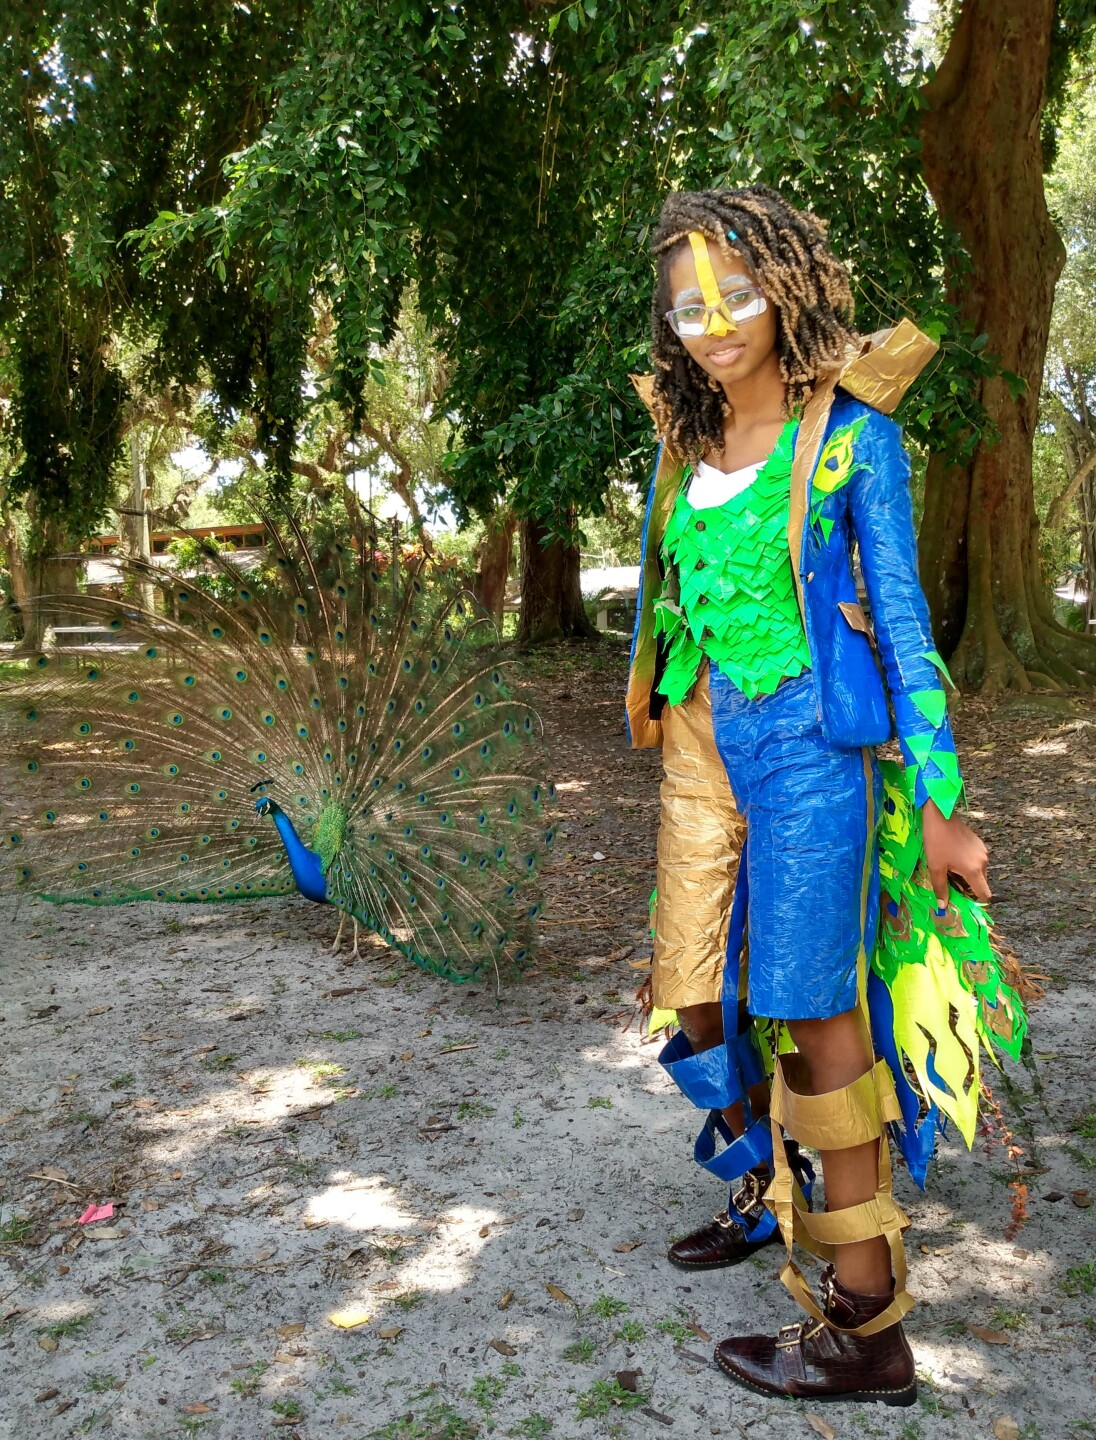 A Boca Raton teen is a finalist in a contest where her duct tape outfit could score her a $10,000 scholarship.